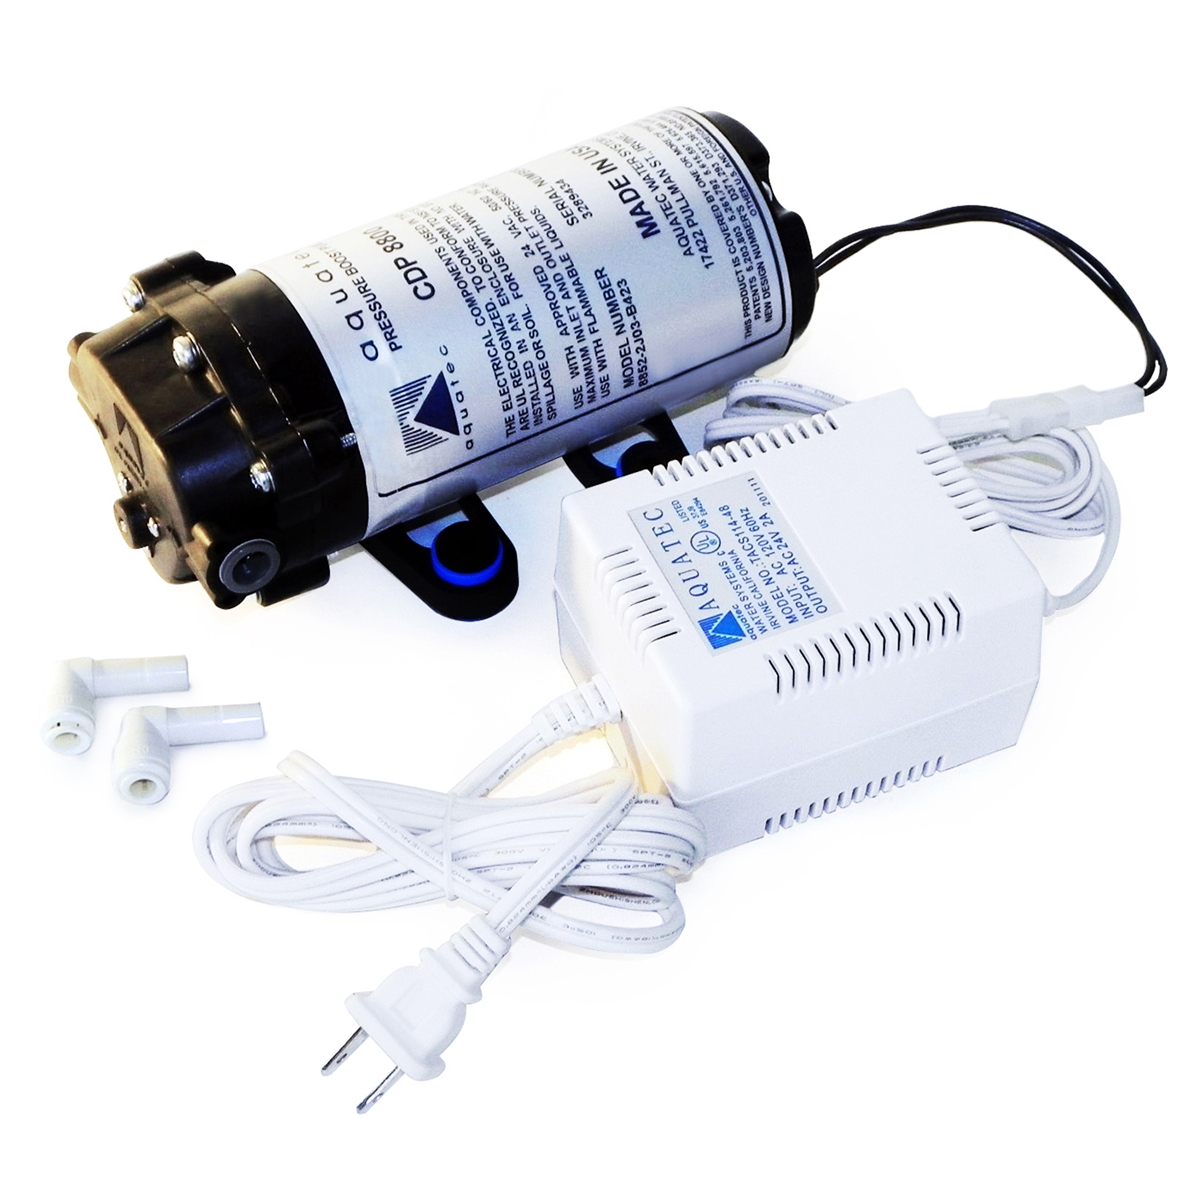 Aquatec Cdp8800 Booster Pump 8851 2j03 B423s Transformer